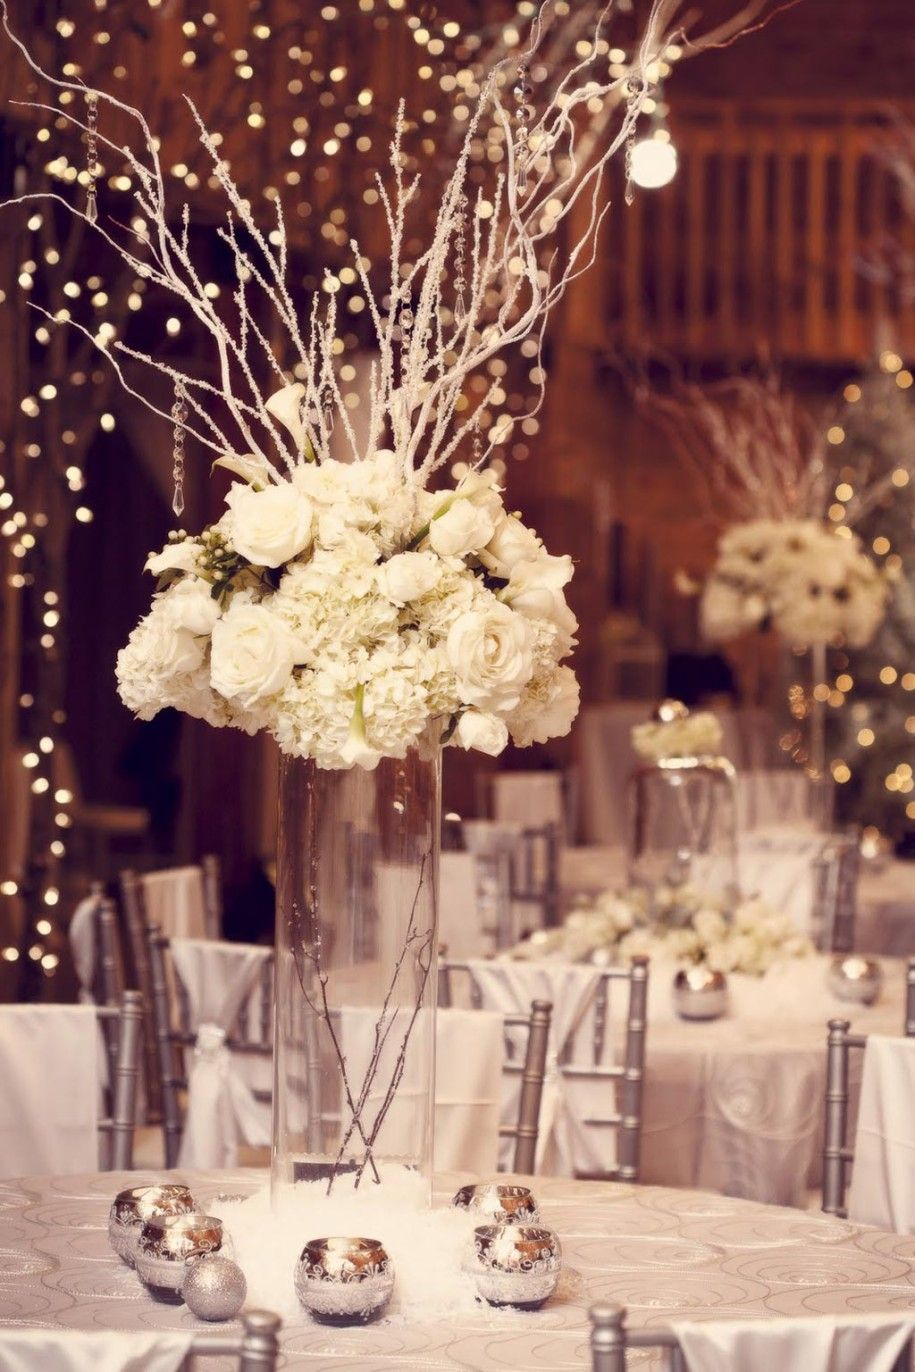 Winter Centerpieces To Make Awesome Winter Wedding Centerpieces Tips Winter Wedding Centerpieces White Winter Wedding Winter Wedding Silver White